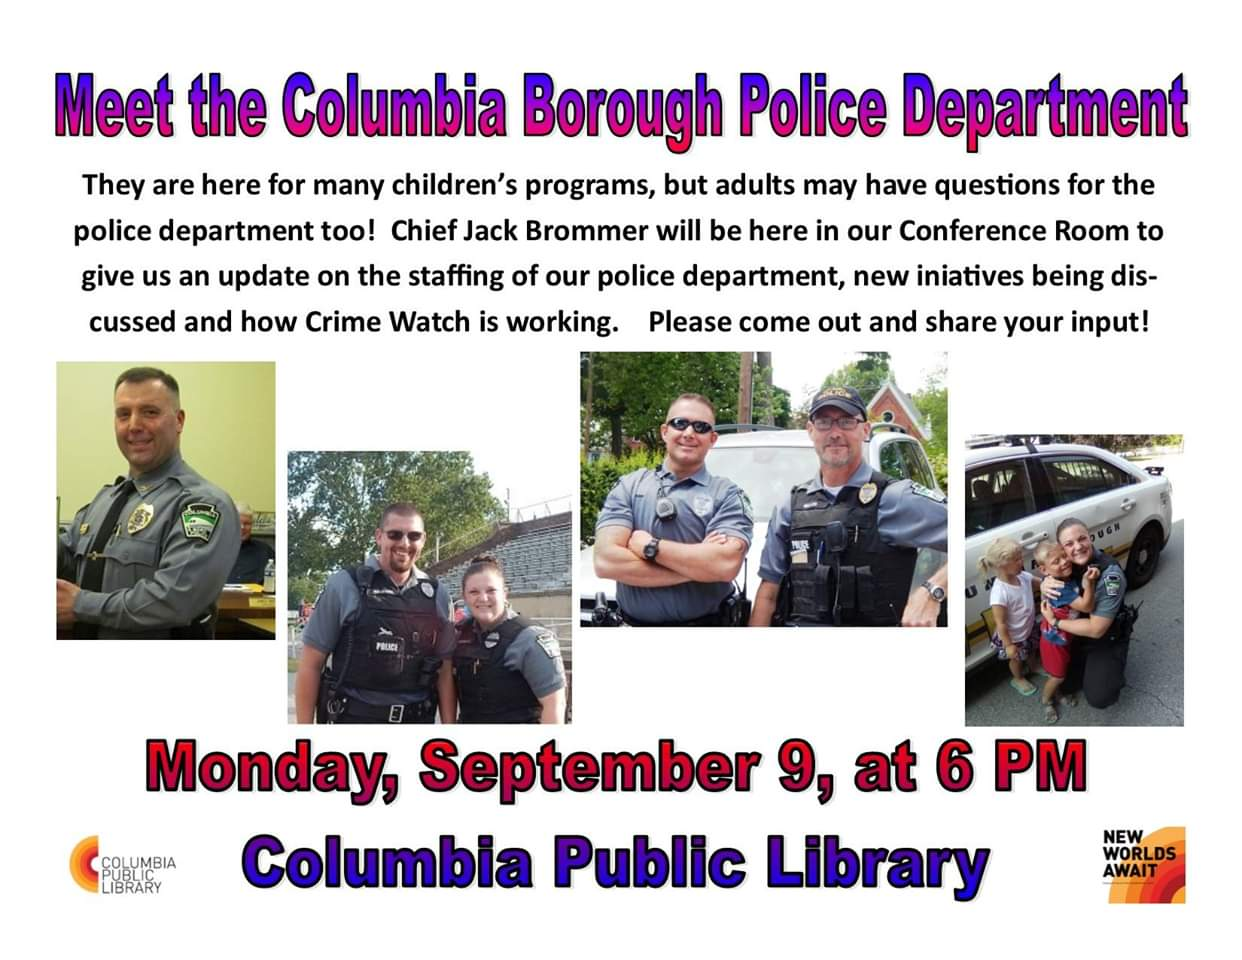 COLUMBIA SPY: Meet the Police - Monday, September 9, at the